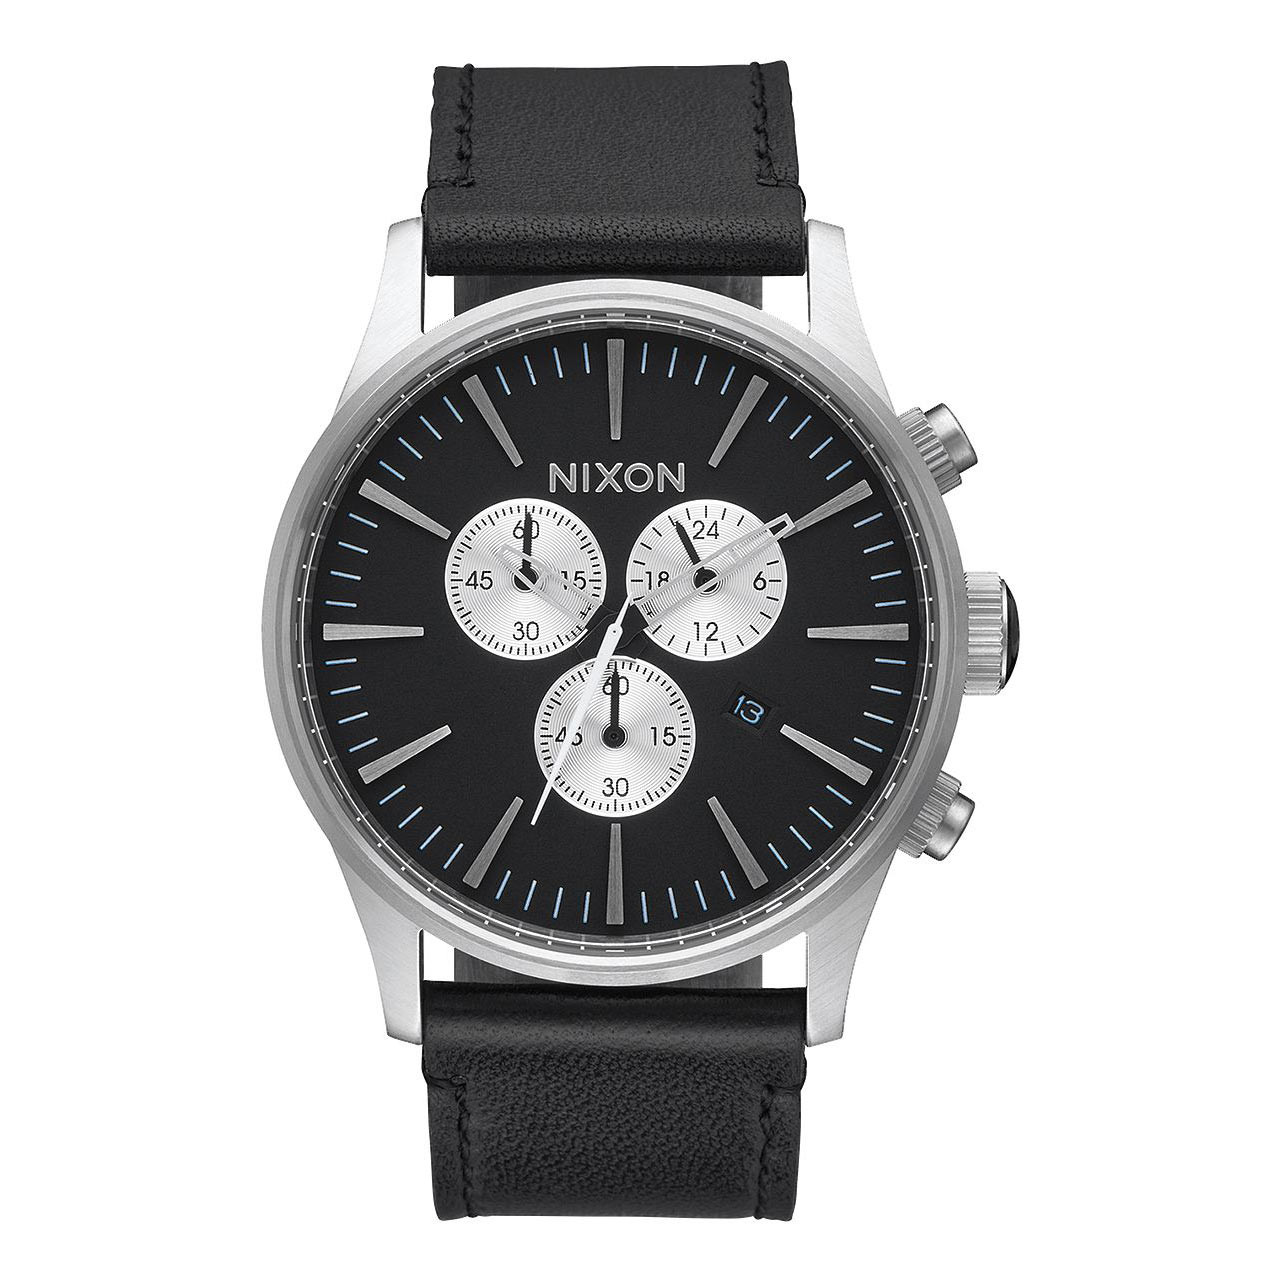 Hodinky Nixon Sentry Chrono Leather black